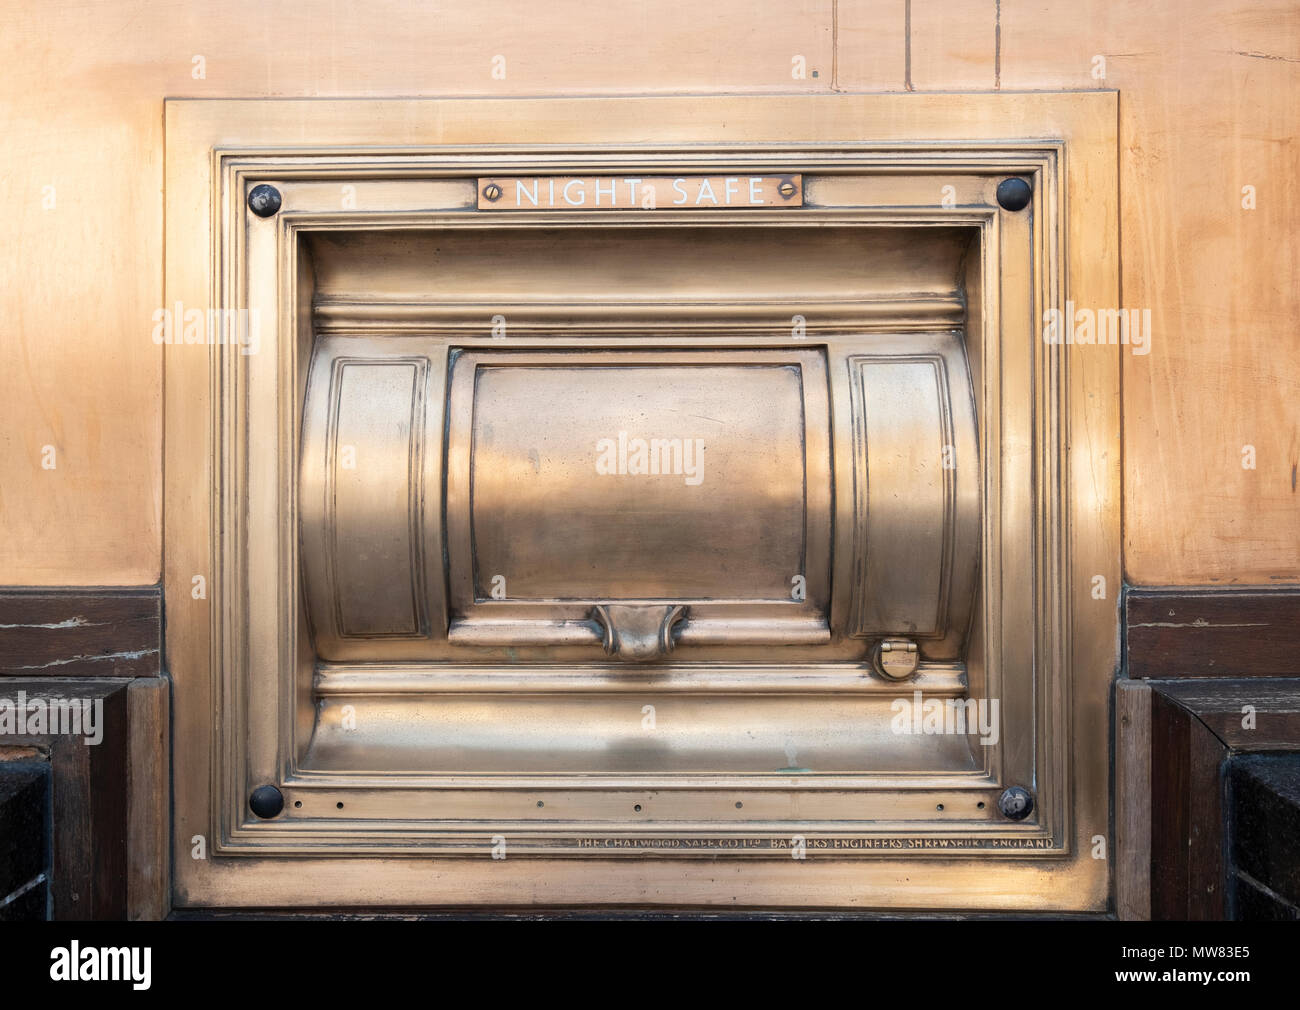 View of old brass night safe outside bank - Stock Image